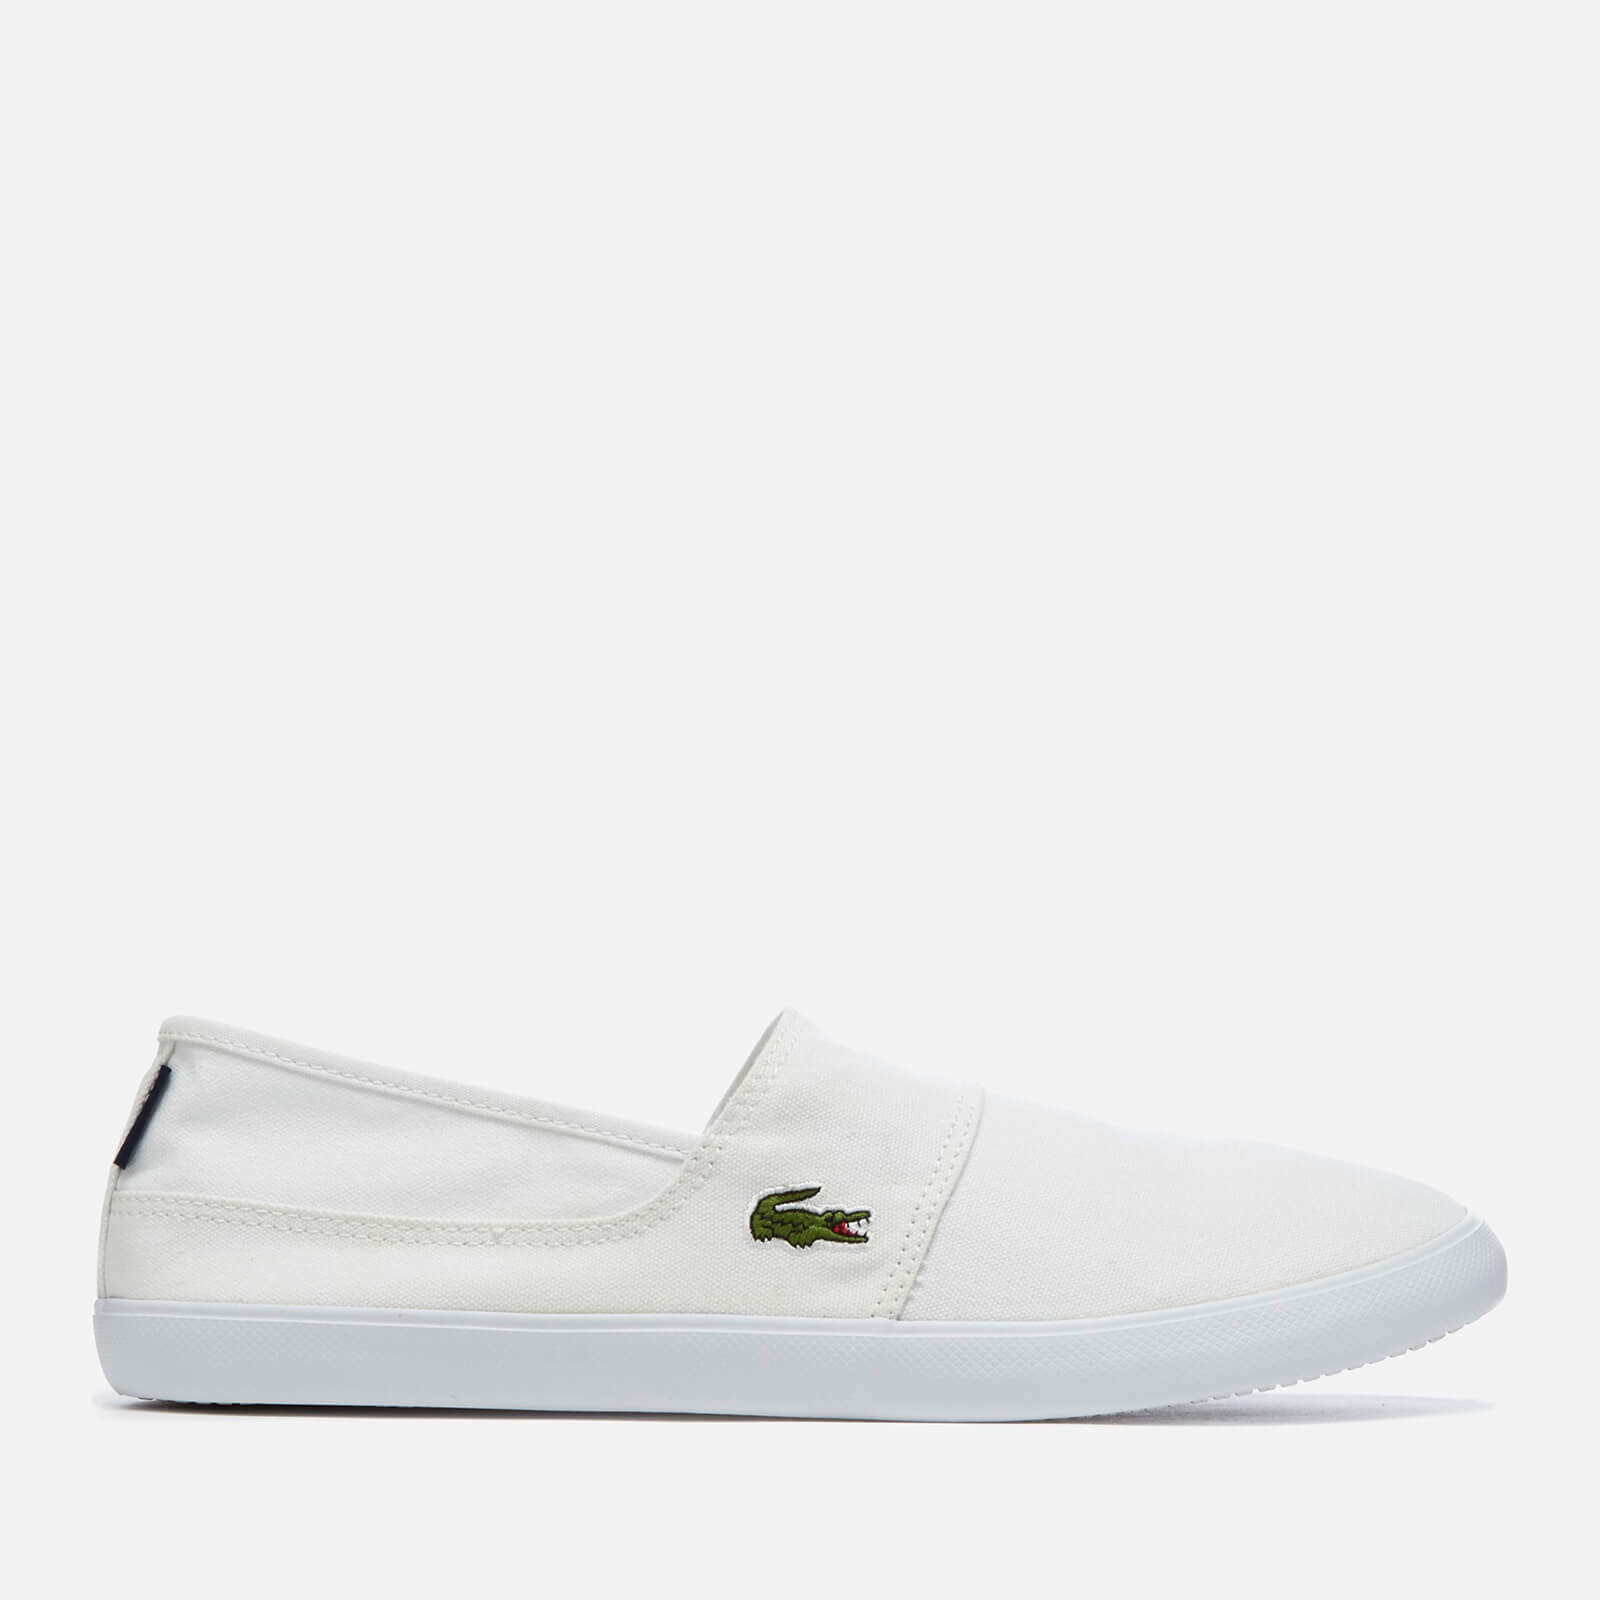 76d121713f27 Lacoste Men s Marice Bl 2 Canvas Slip-On Pumps - White Mens Footwear ...